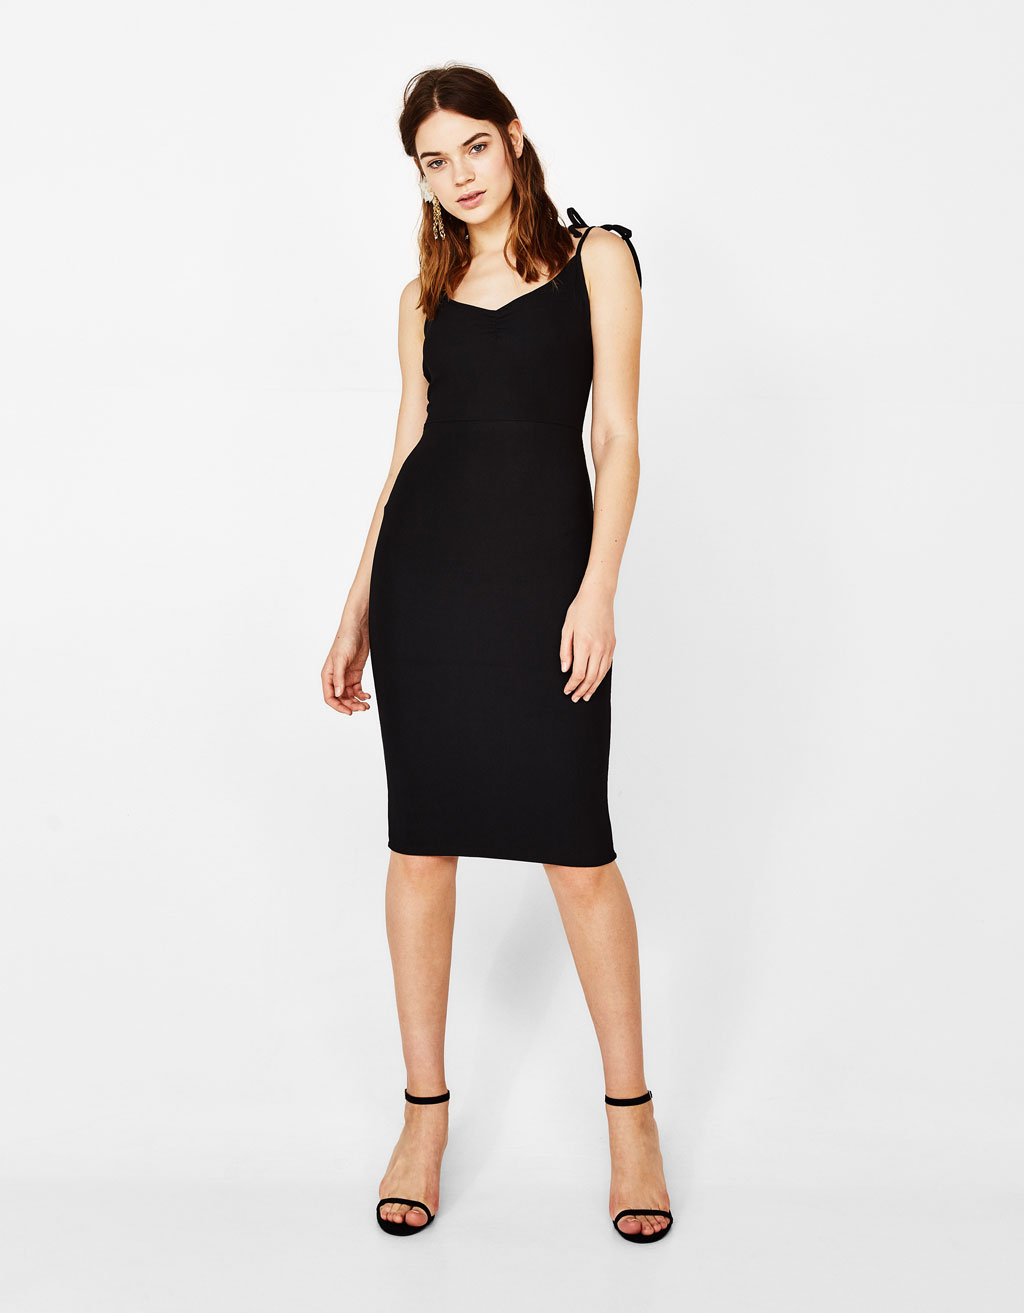 Midi dress with tied straps